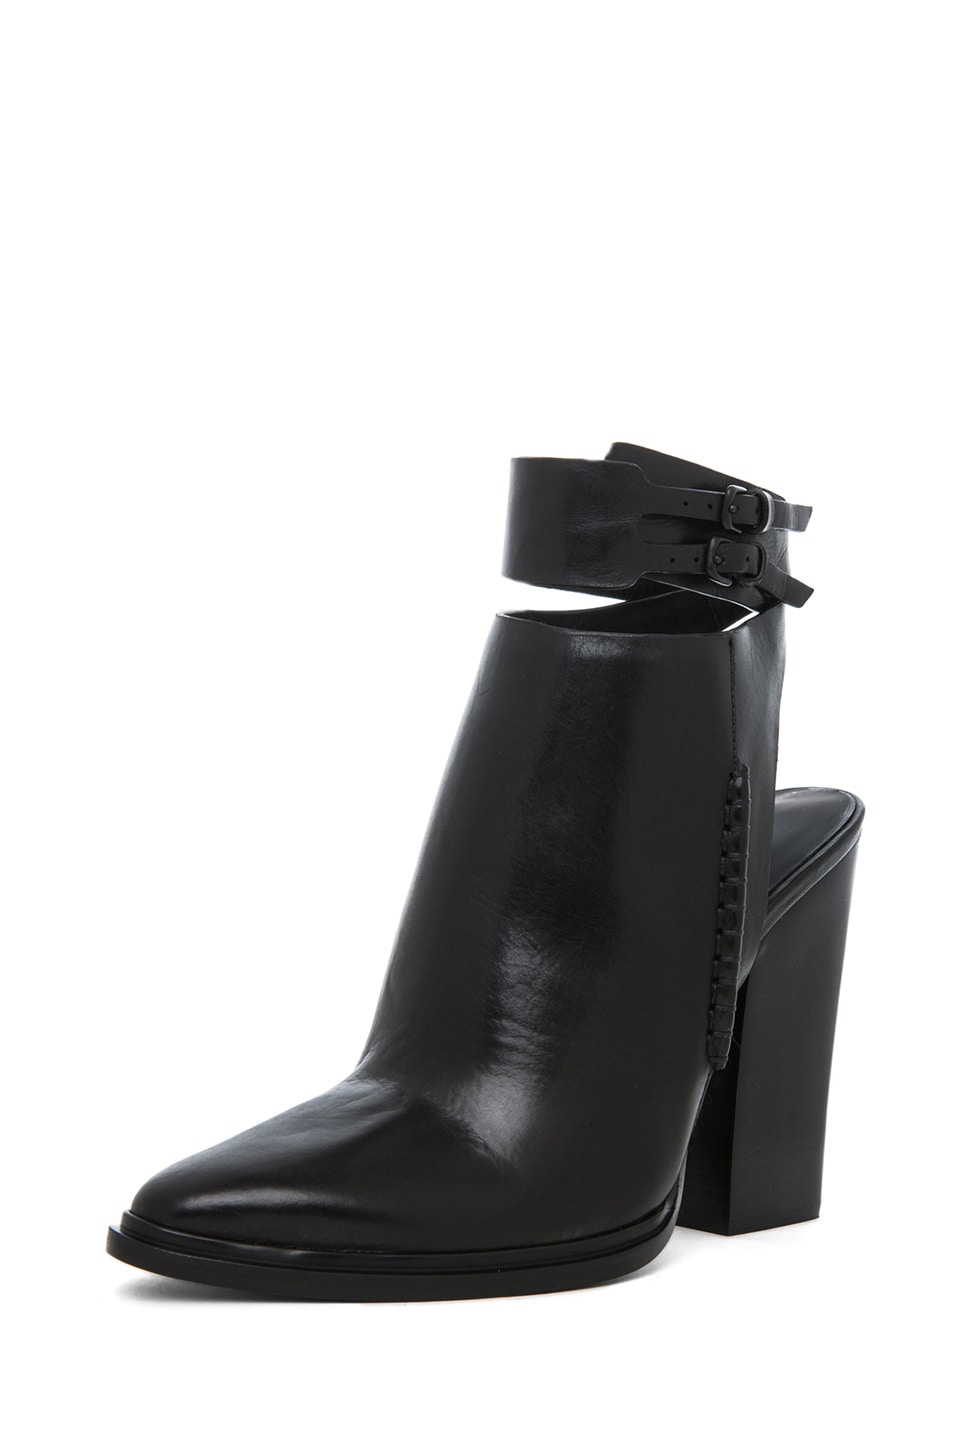 Image 2 of Alexander Wang Dasha Bootie in Black